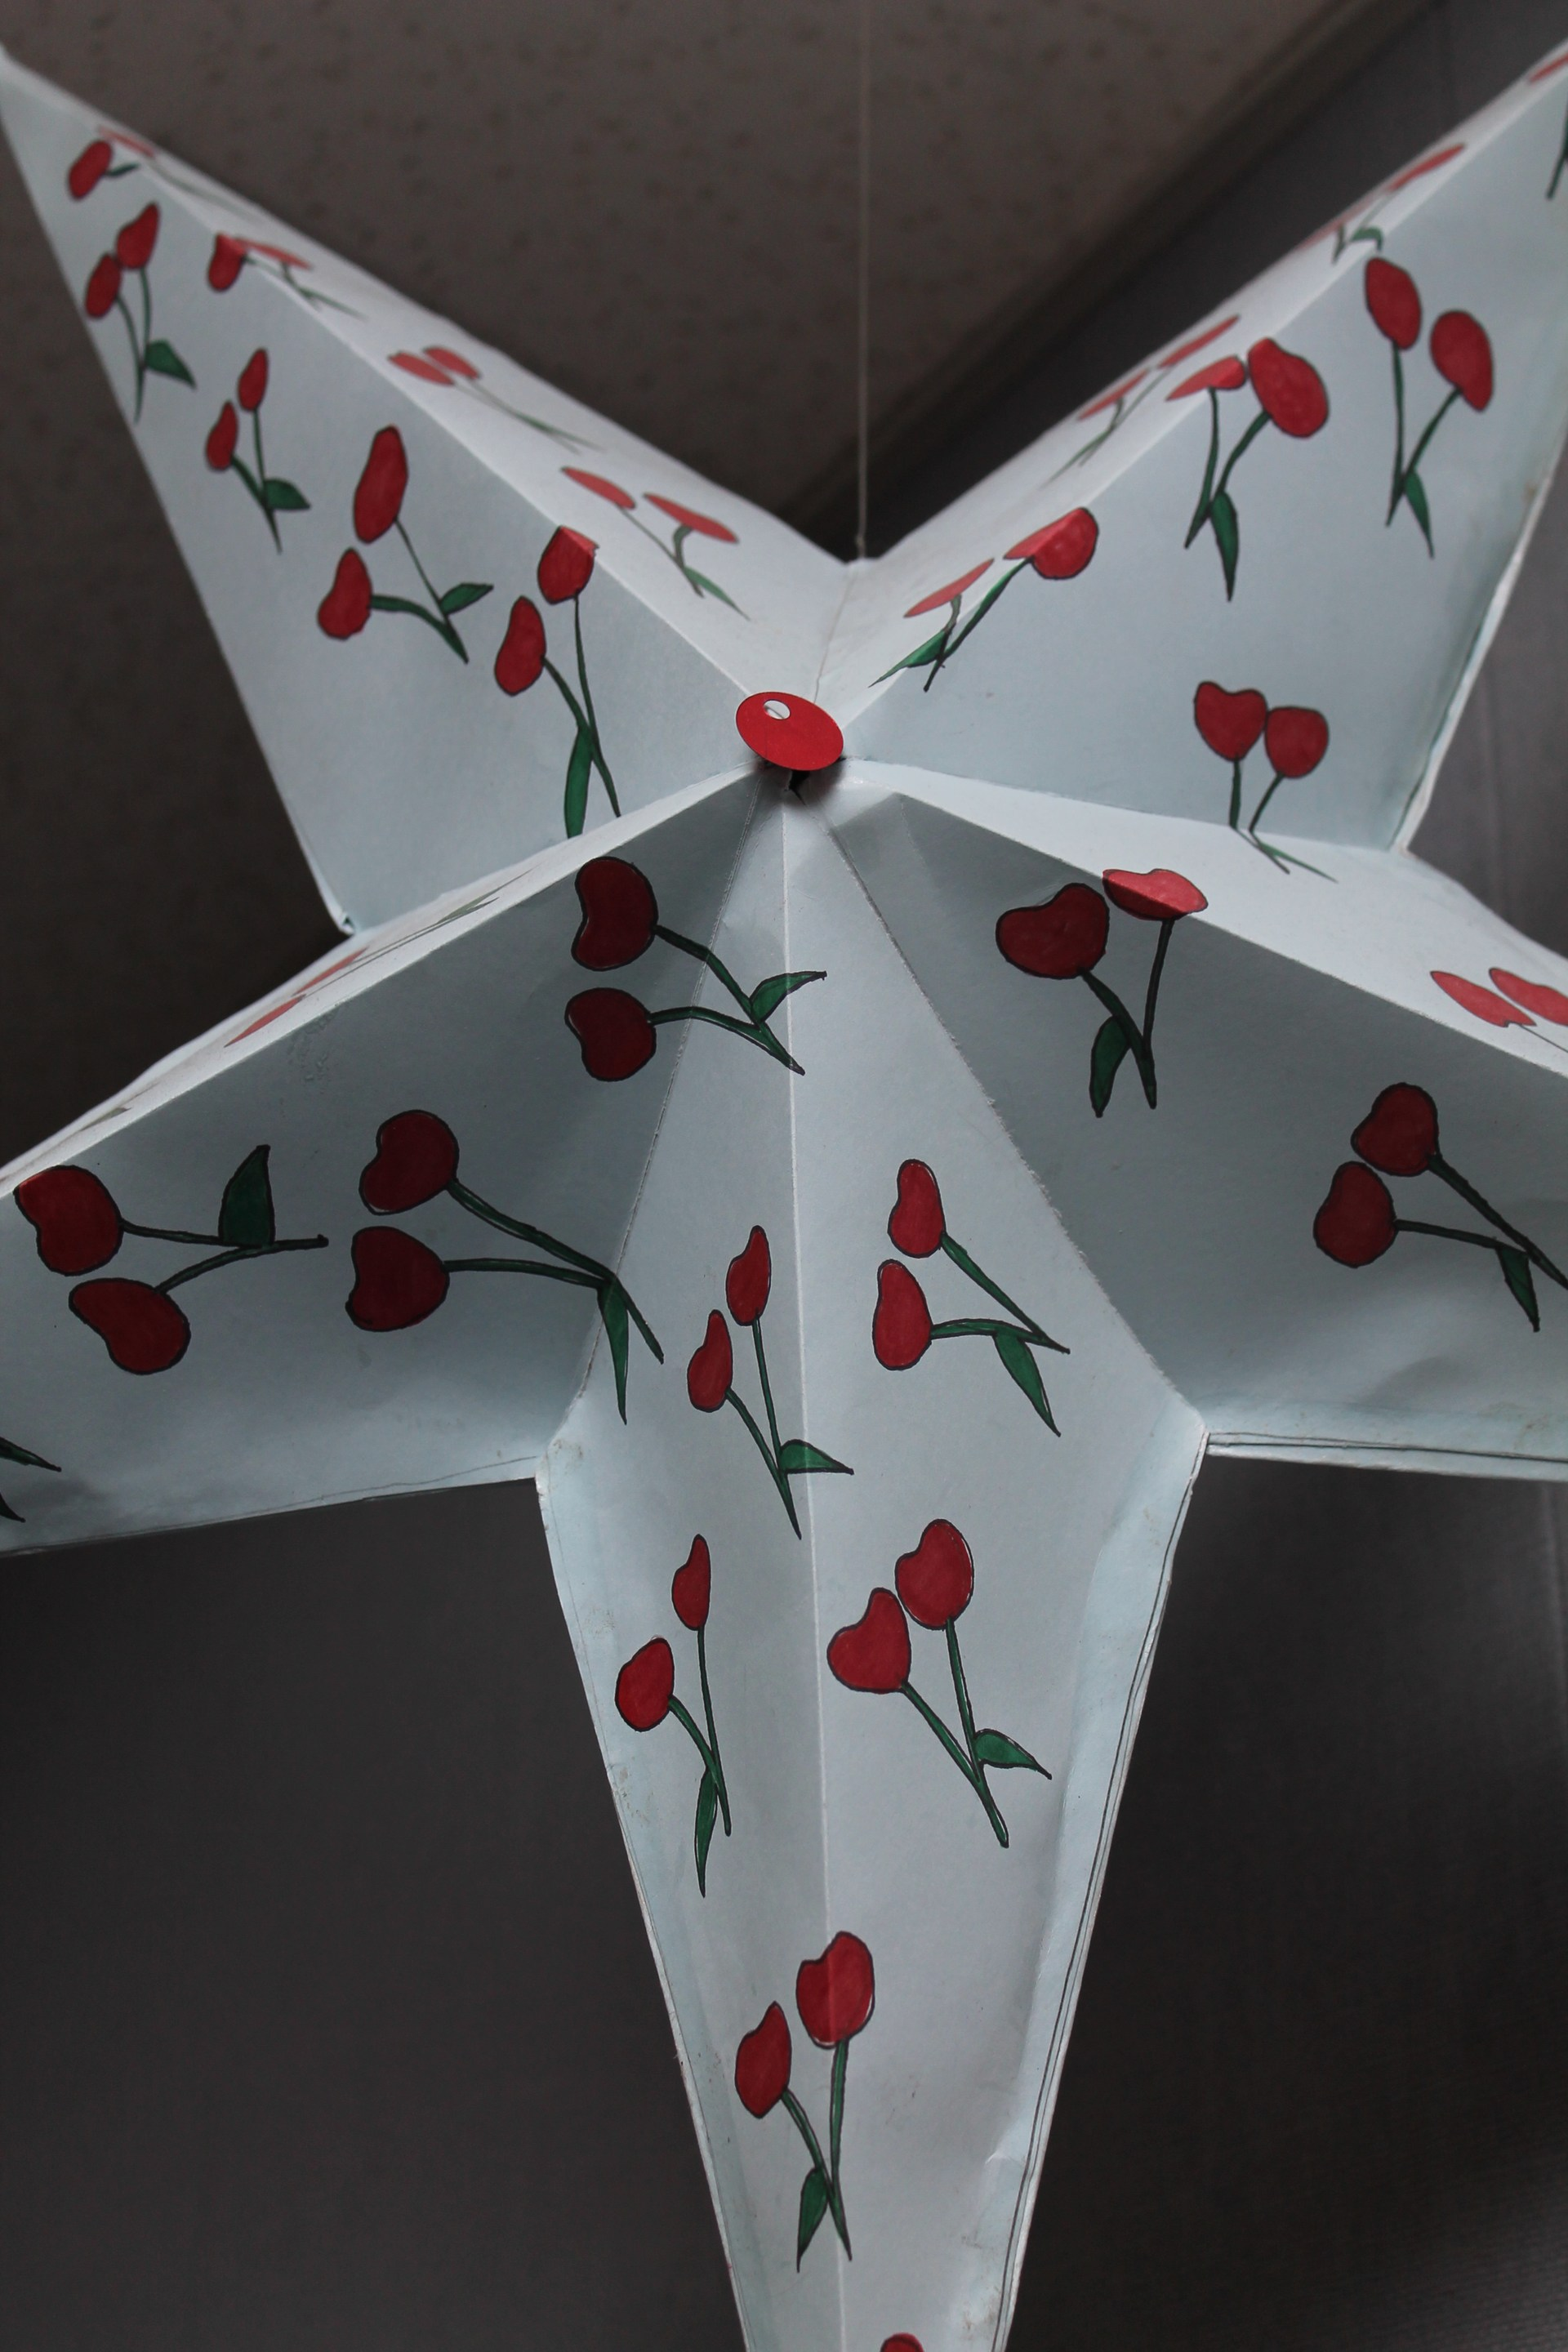 Student Artwork- 3D paper star with a pattern of cherries drawn onto it